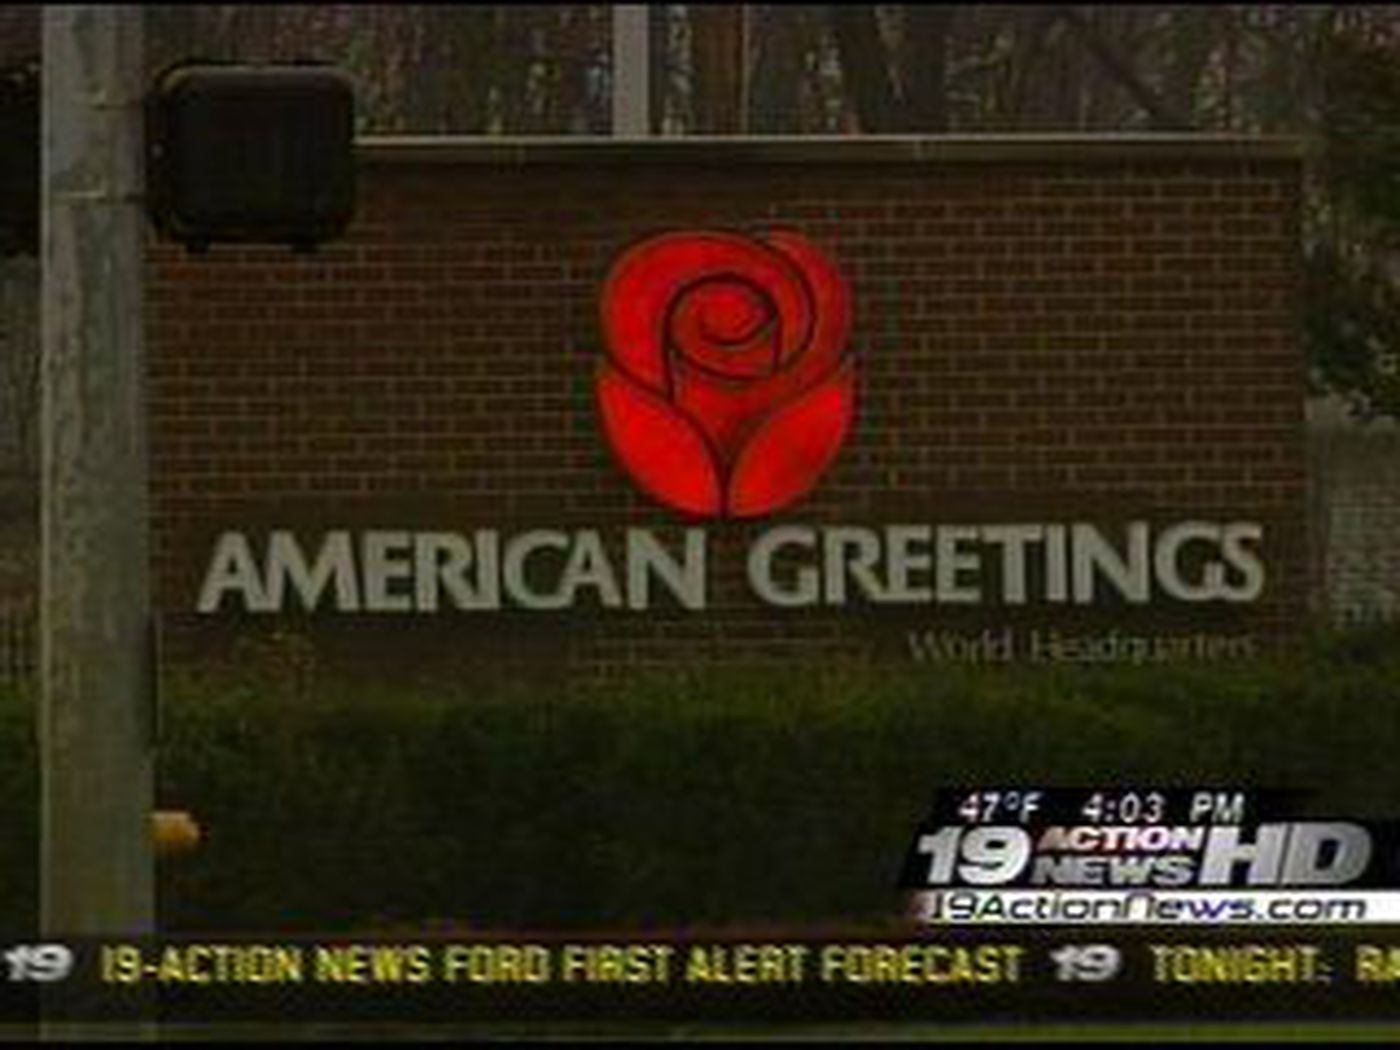 Ag cuts american greetings slashes nearly 300 jobs m4hsunfo